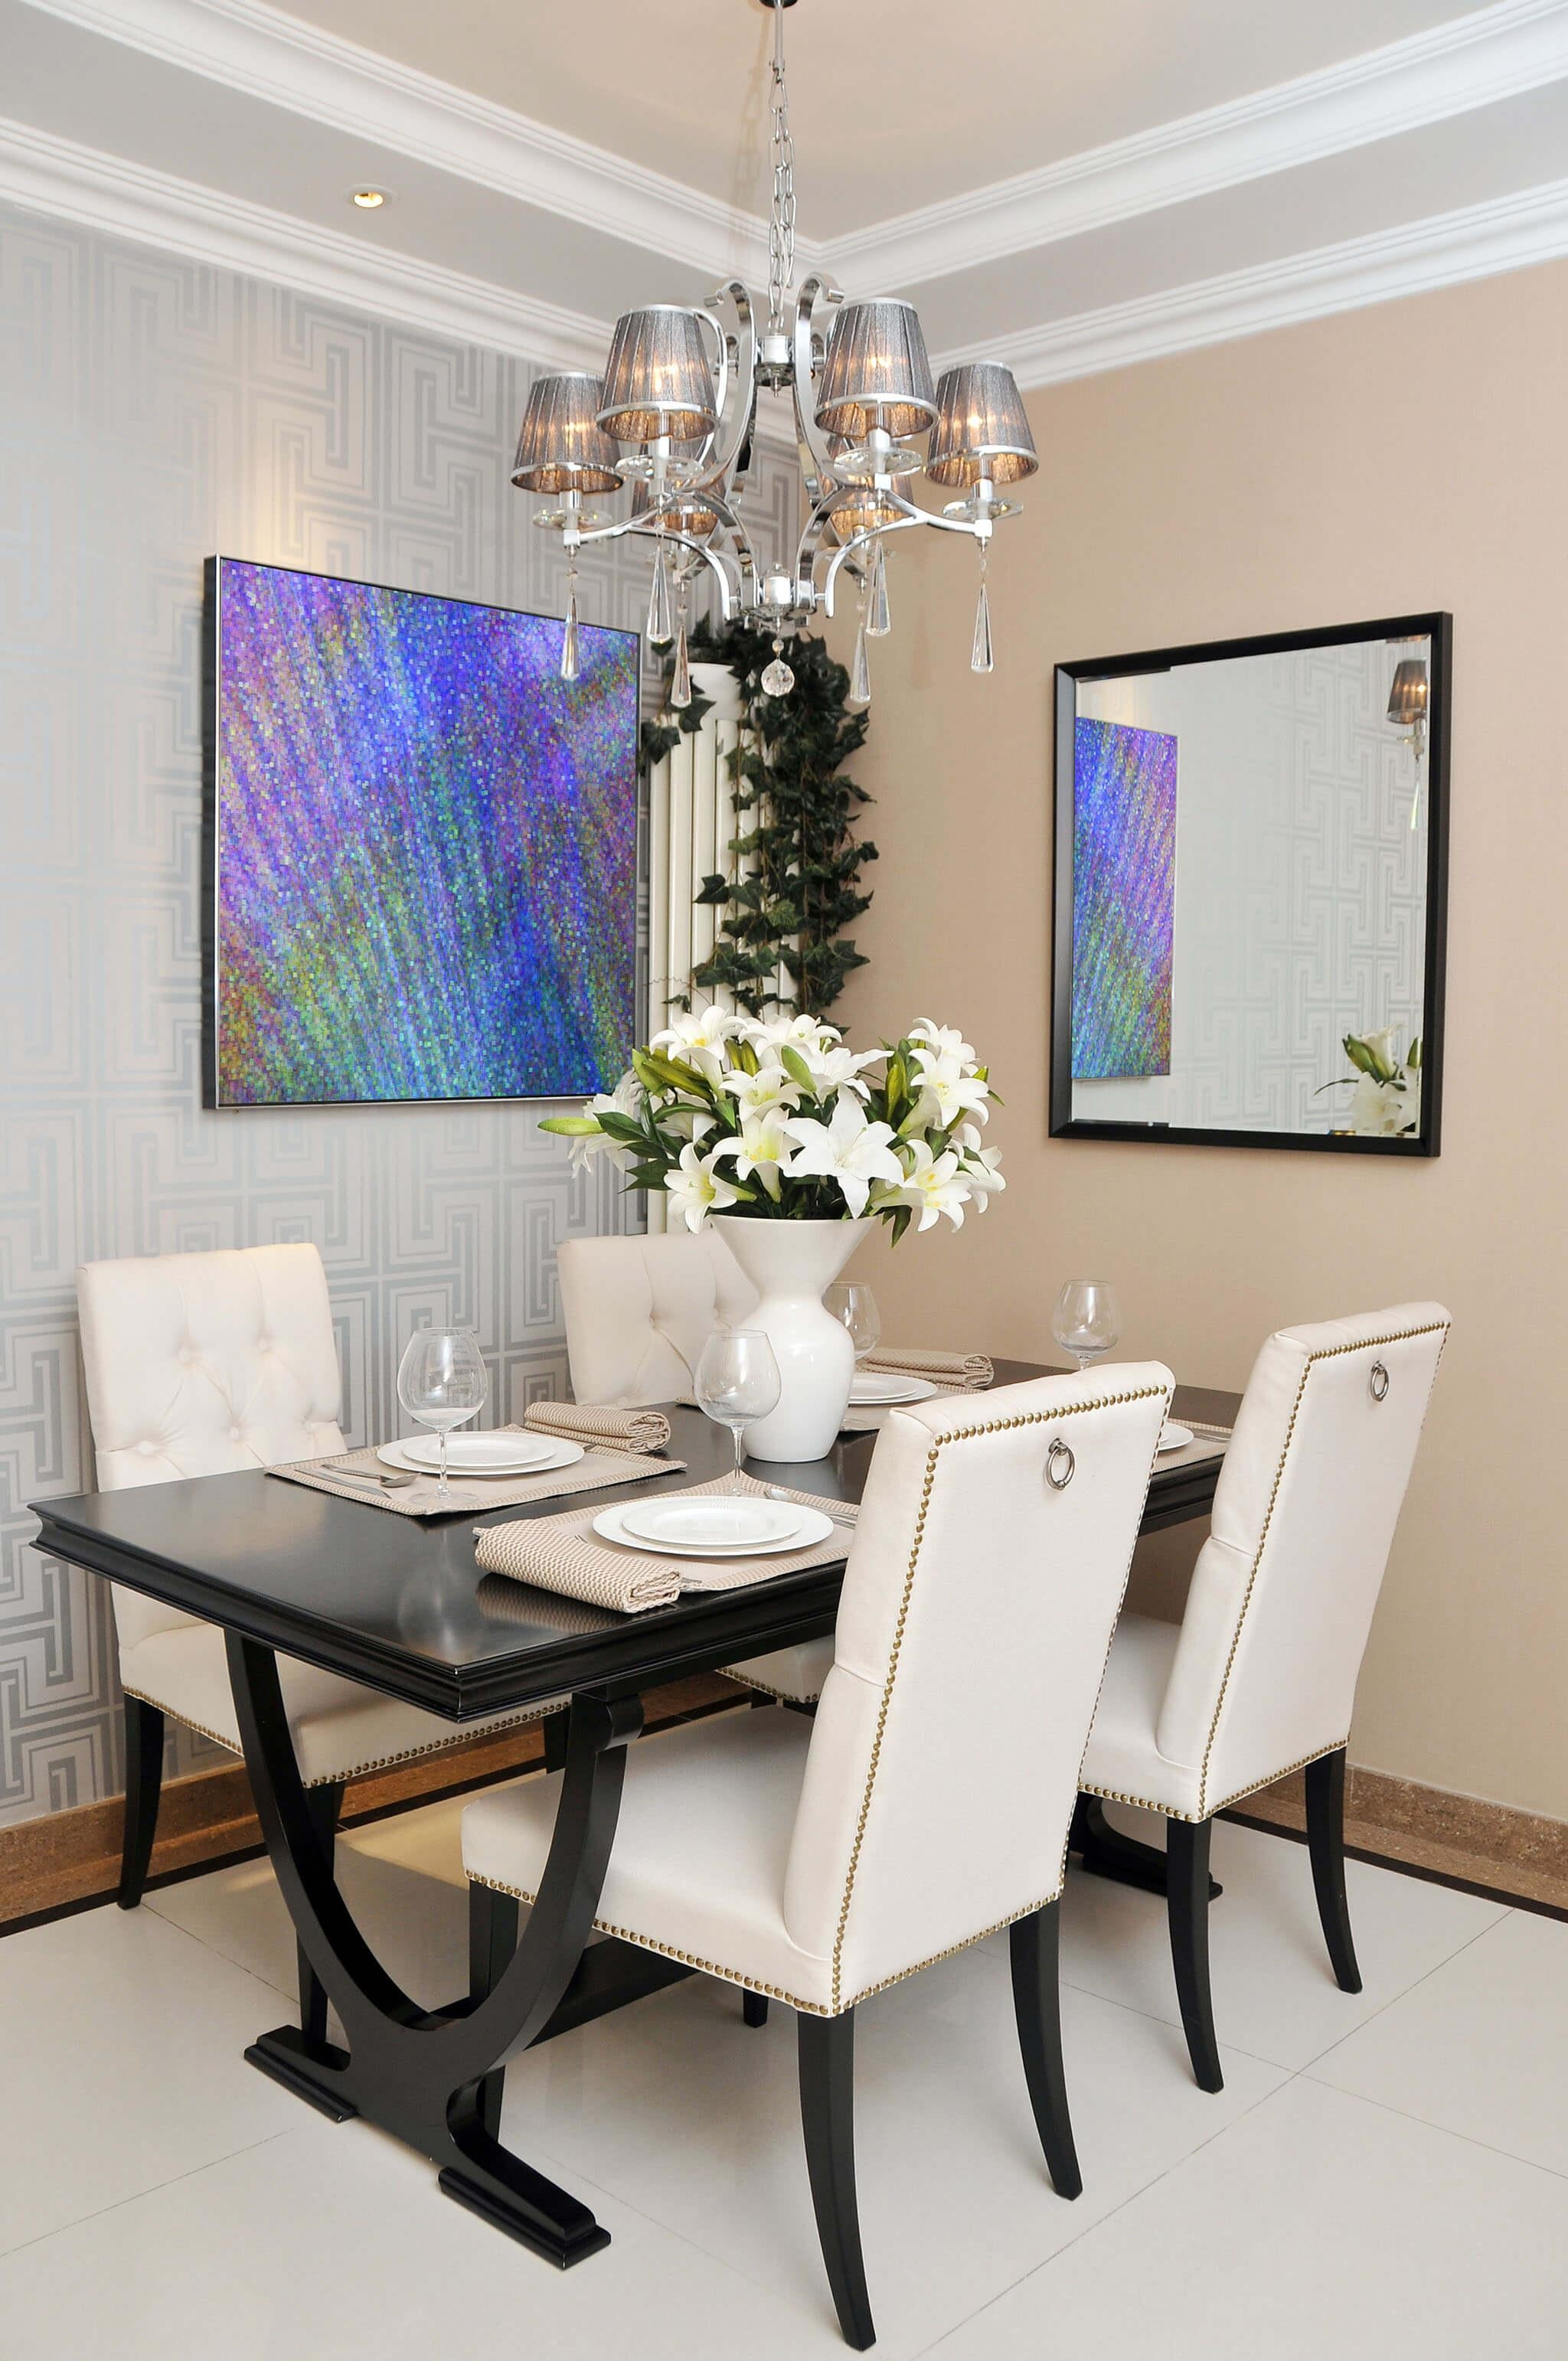 Kitchen & Dining Room Wall Art Ideas – Franklin Arts For Dining Area Wall Art (View 16 of 20)